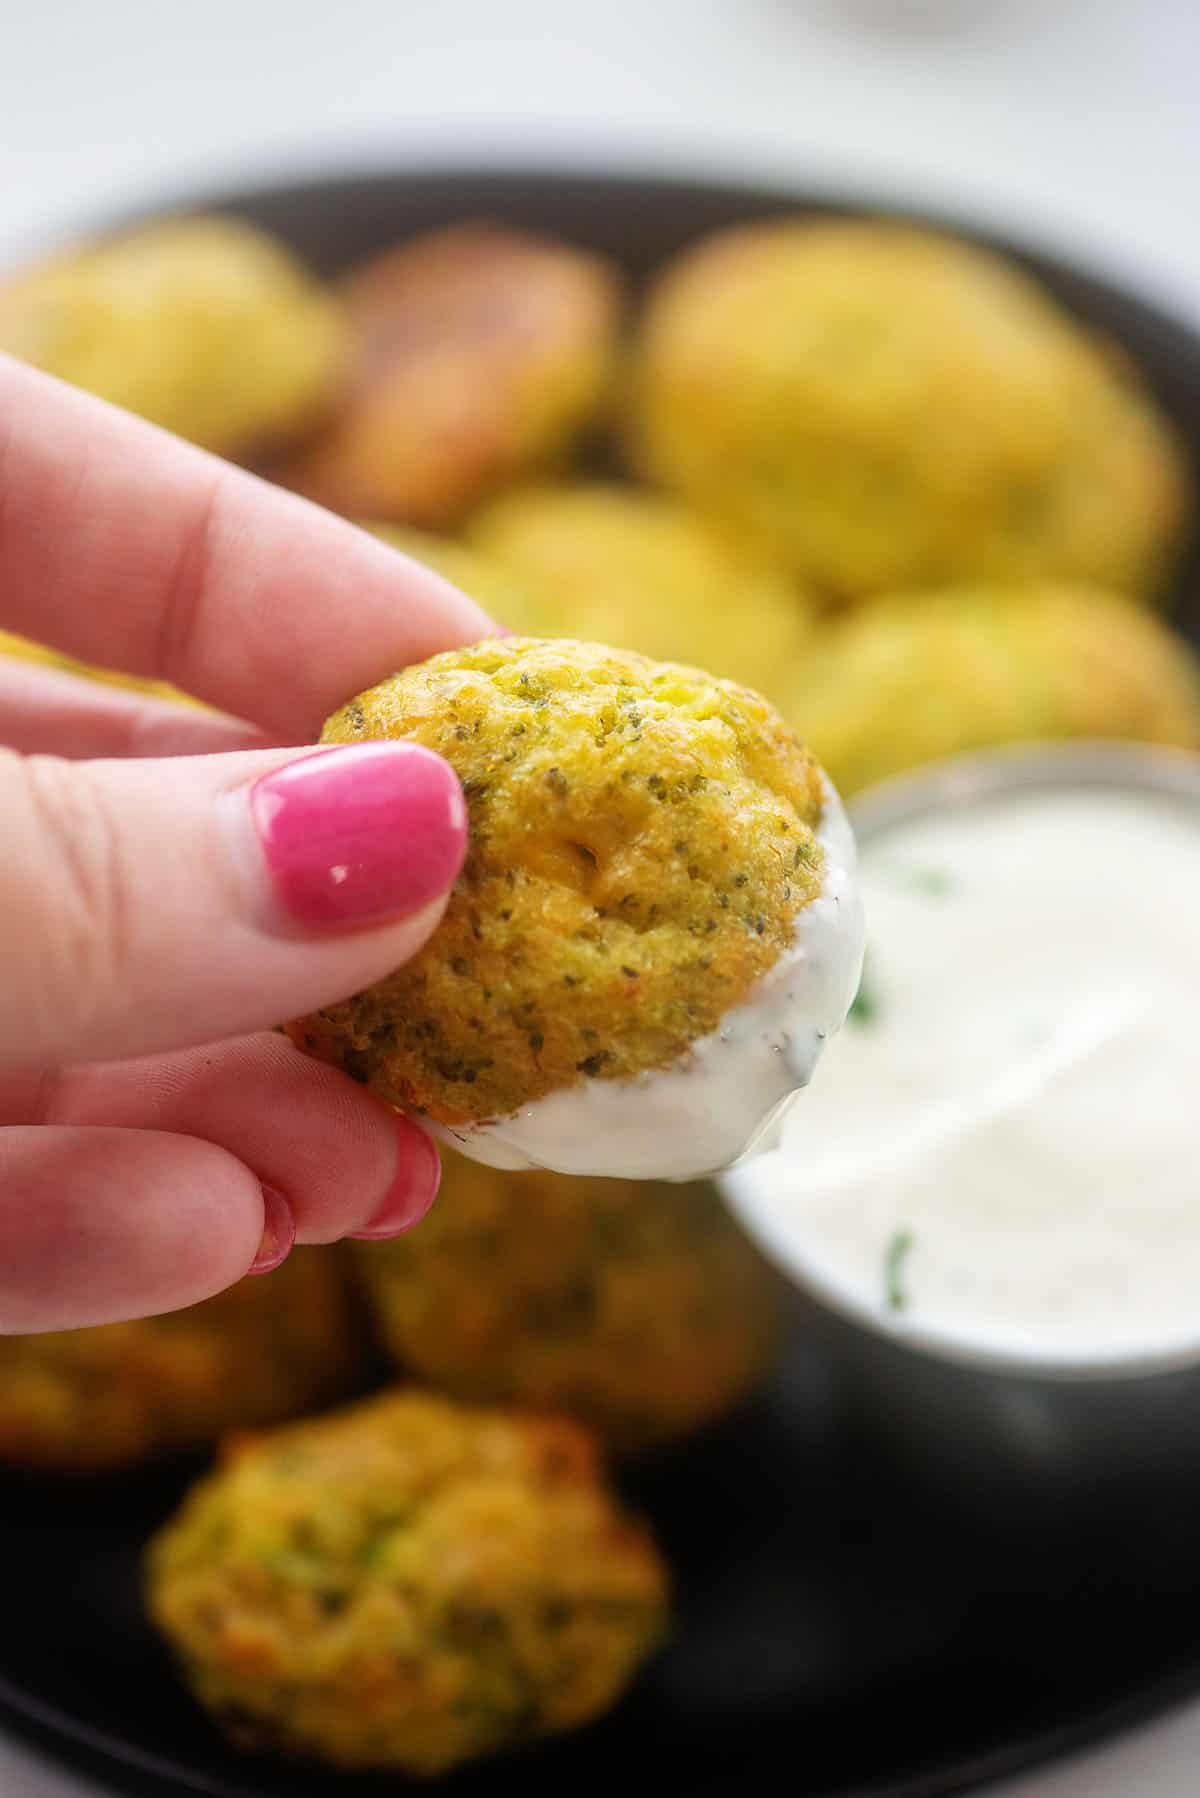 broccoli tot being dipped in ranch dressing.